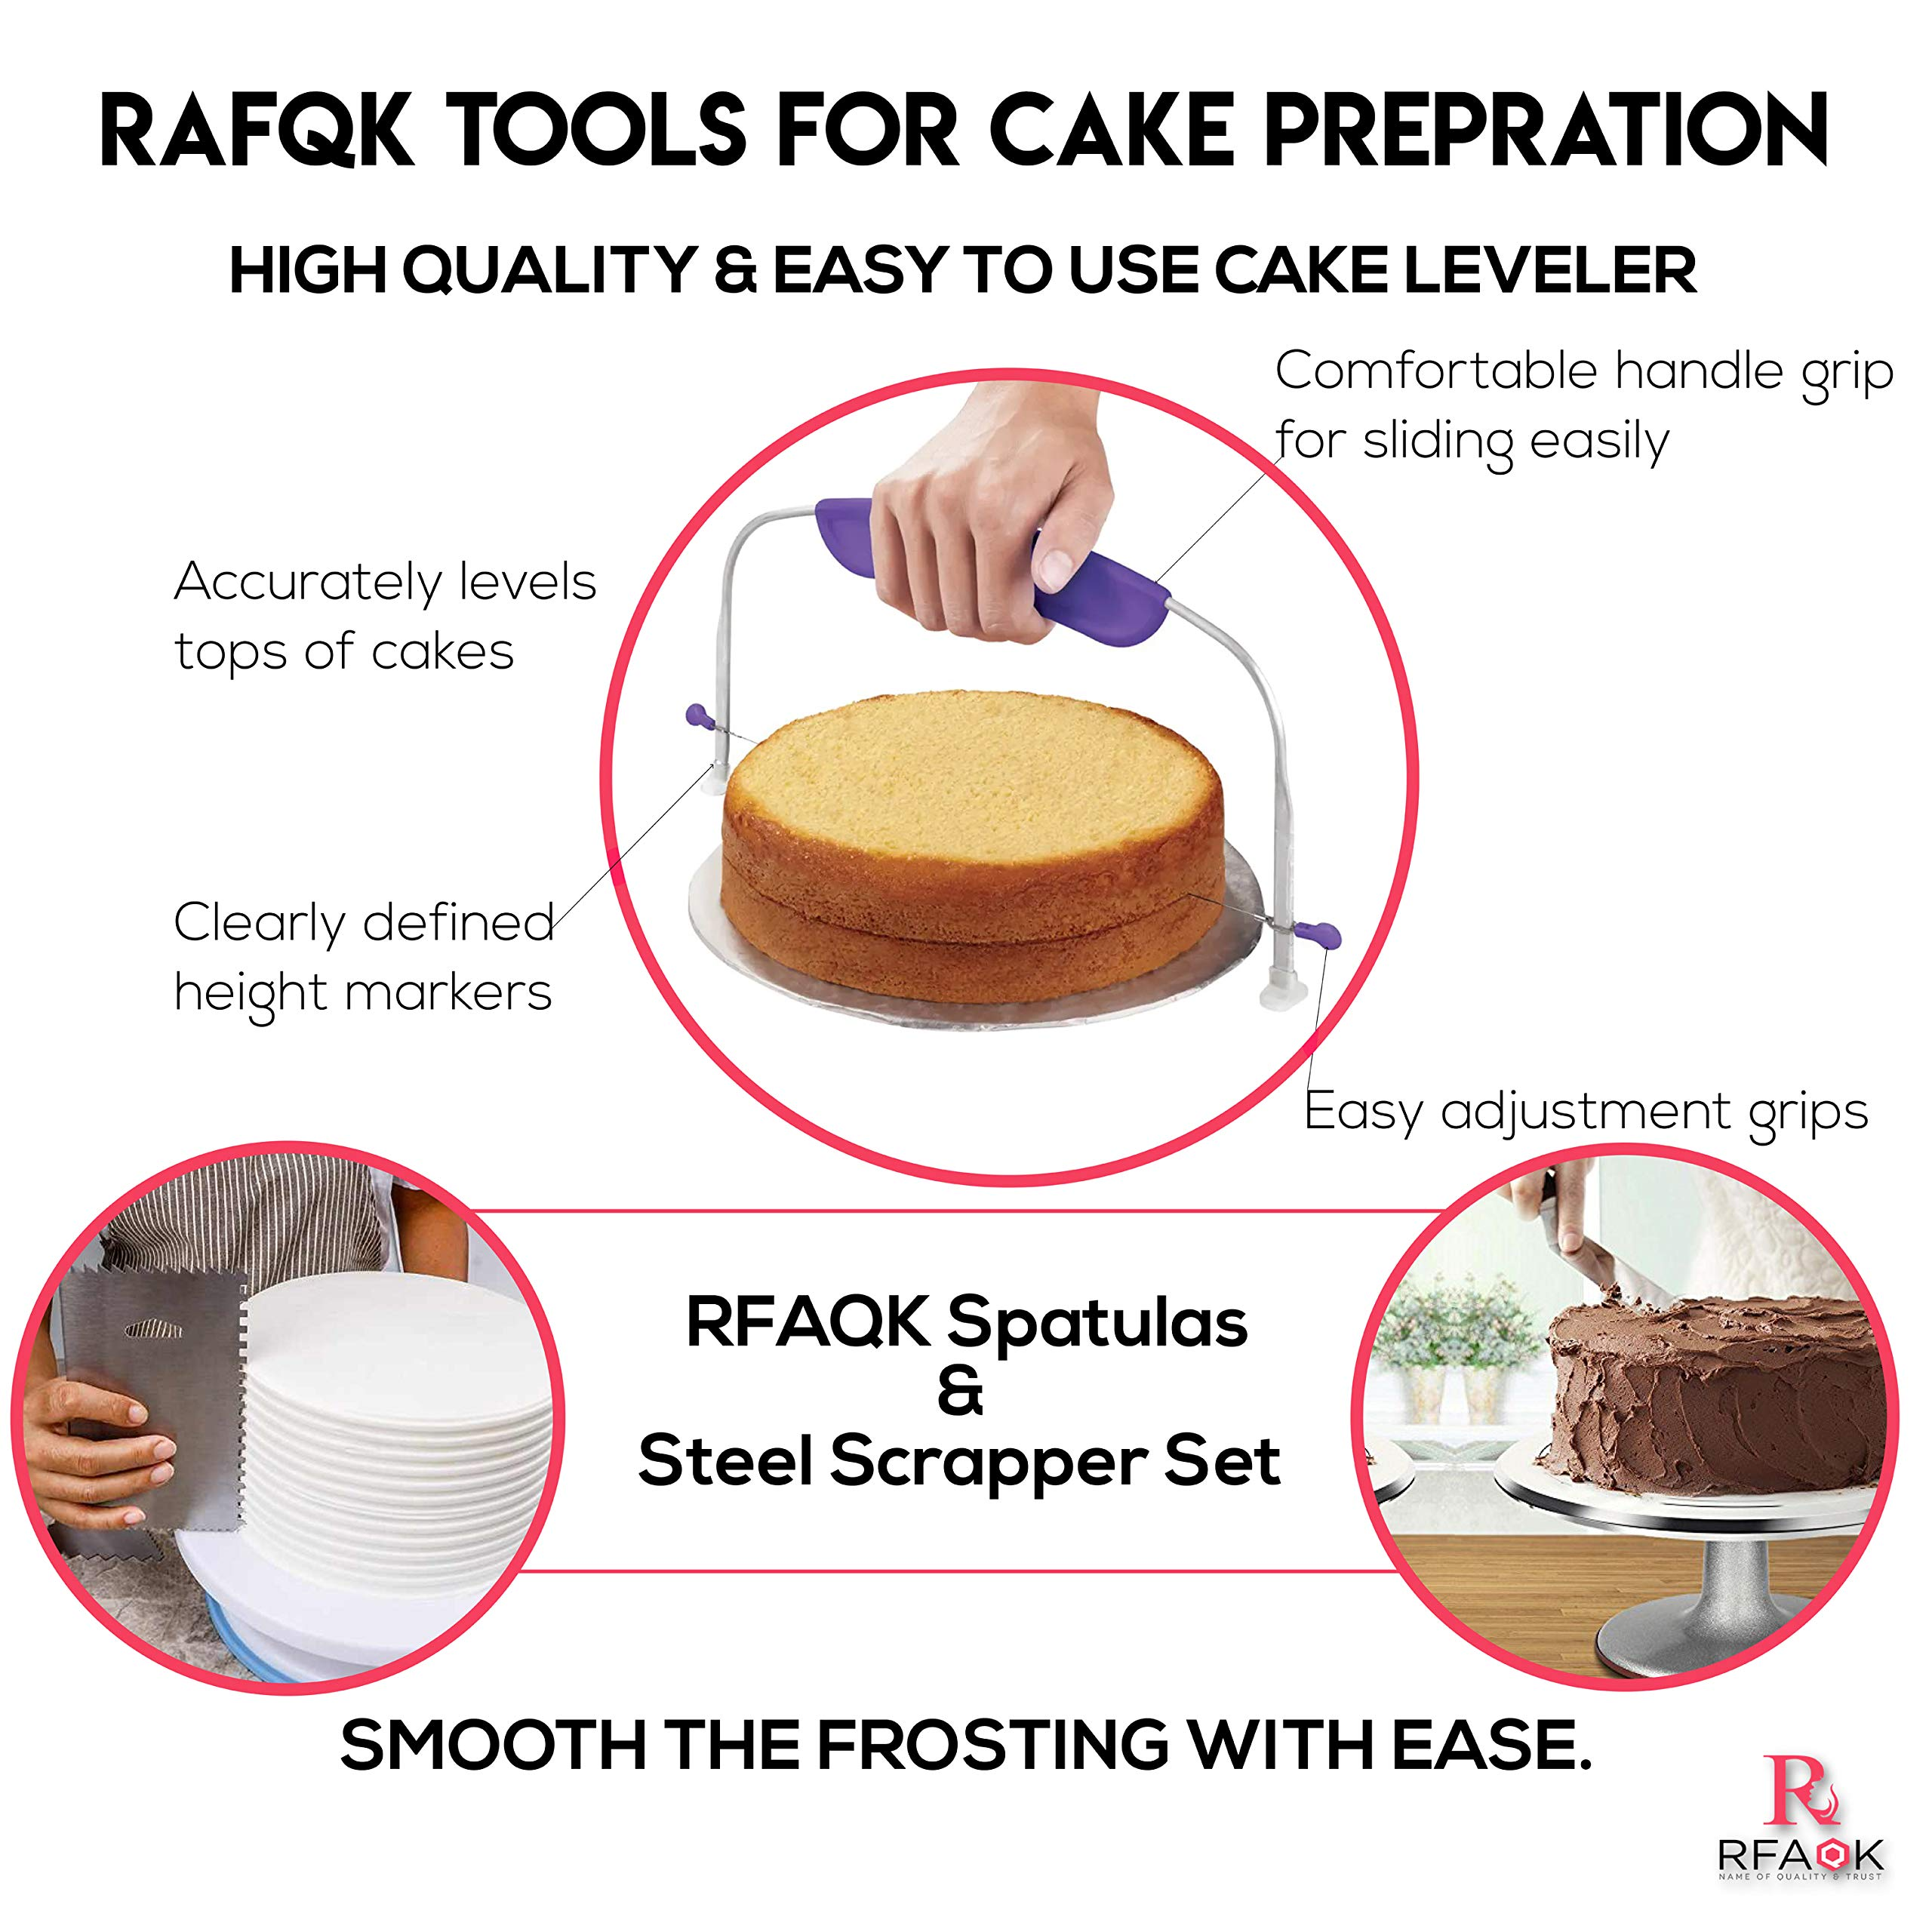 100 Pcs Cake Decorating Kit with Aluminum Metal Turntable-Rotating Stand-Cake server & knife set-48 Numbered Icing tips-7 Russian Piping nozzles-Straight & Angled Spatula-Cake Leveler& Baking supplies by RFAQK (Image #5)